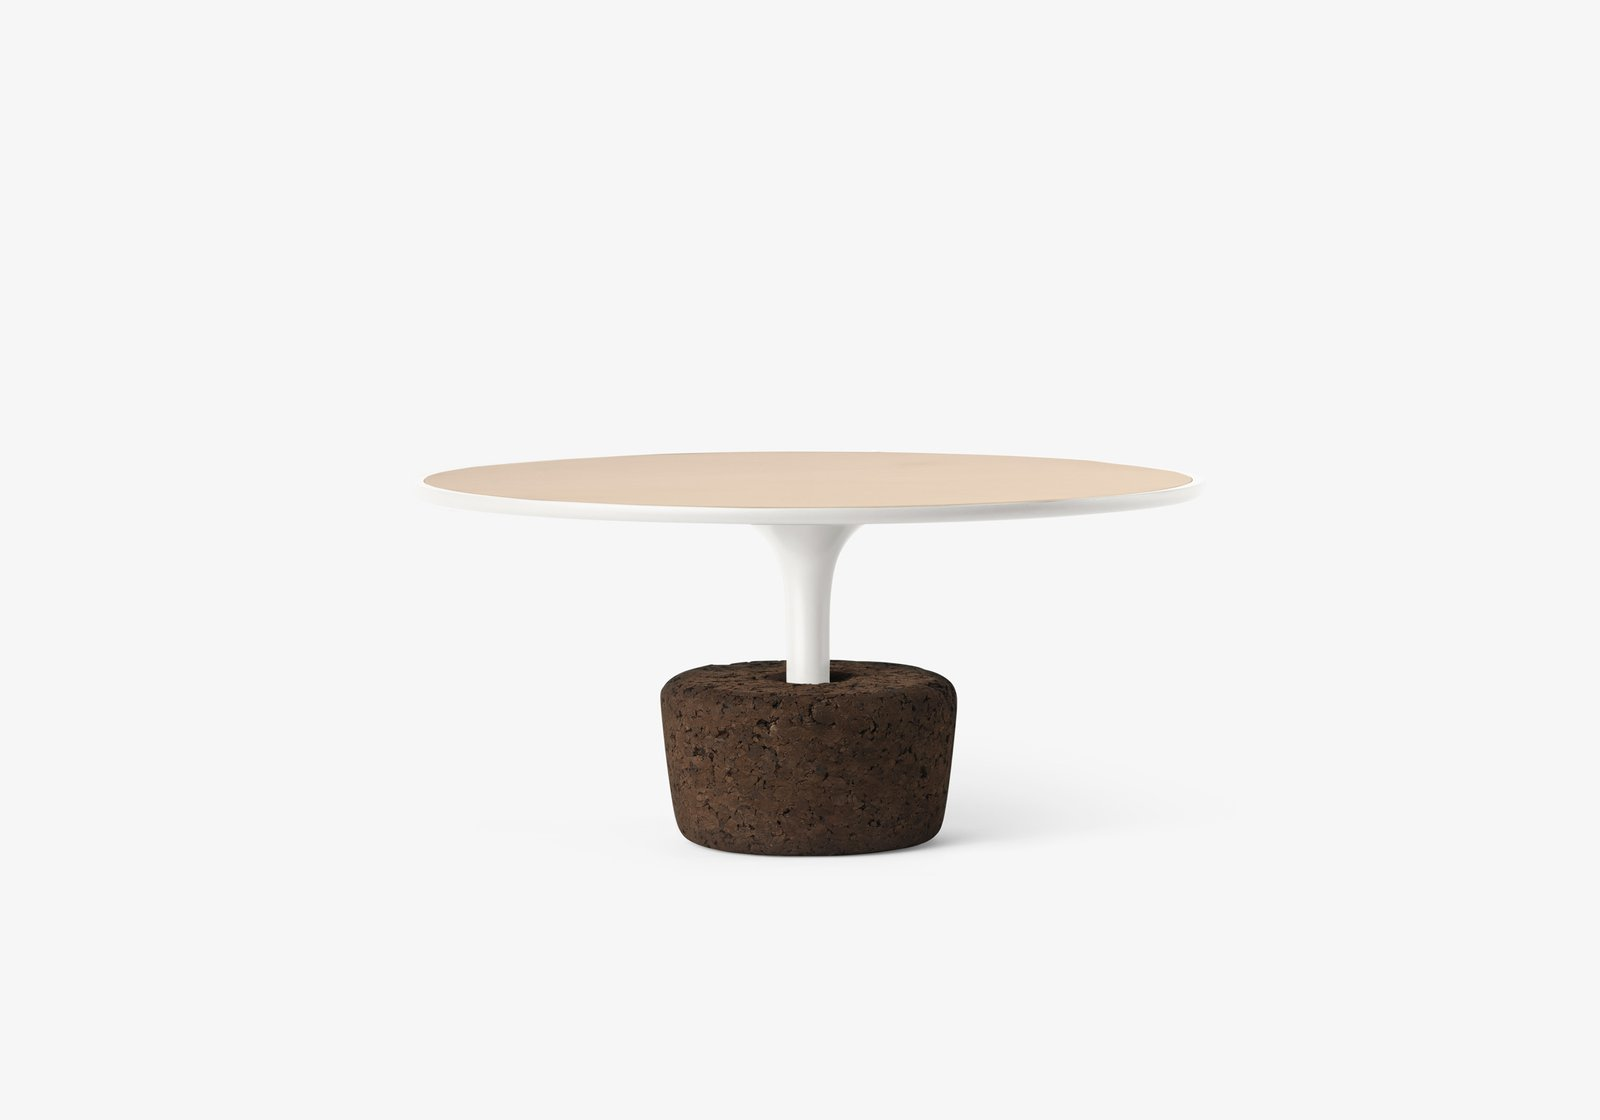 "Flora Wide Low  FLORA is a set of coffee tables that refers to the plants we offer to the ones we love, so there is a similarity between taking care of plants and taking care of the objects. These versatile tables combine natural materials, with four sizes and six different colored frame finishes and may be used separately or together.  Size  Ø65 x H30 cm / Ø25,6'' x H11,8''.  Weight  5,7 kg / 12,6 lbs.   Search ""압구정출장안마【Ø1Ø↔3Ø67↔661Ø】⊀후불제⊁압구정출장마사지 압구정콜걸출장안마후기【20대맞춤】압구정콜걸출장마사지 압구정출장샵강추 압구정모텔출장美人압구정출장맛사지후기∠압구정출장안마추천후기 압구정출장여대생"" from Floras"